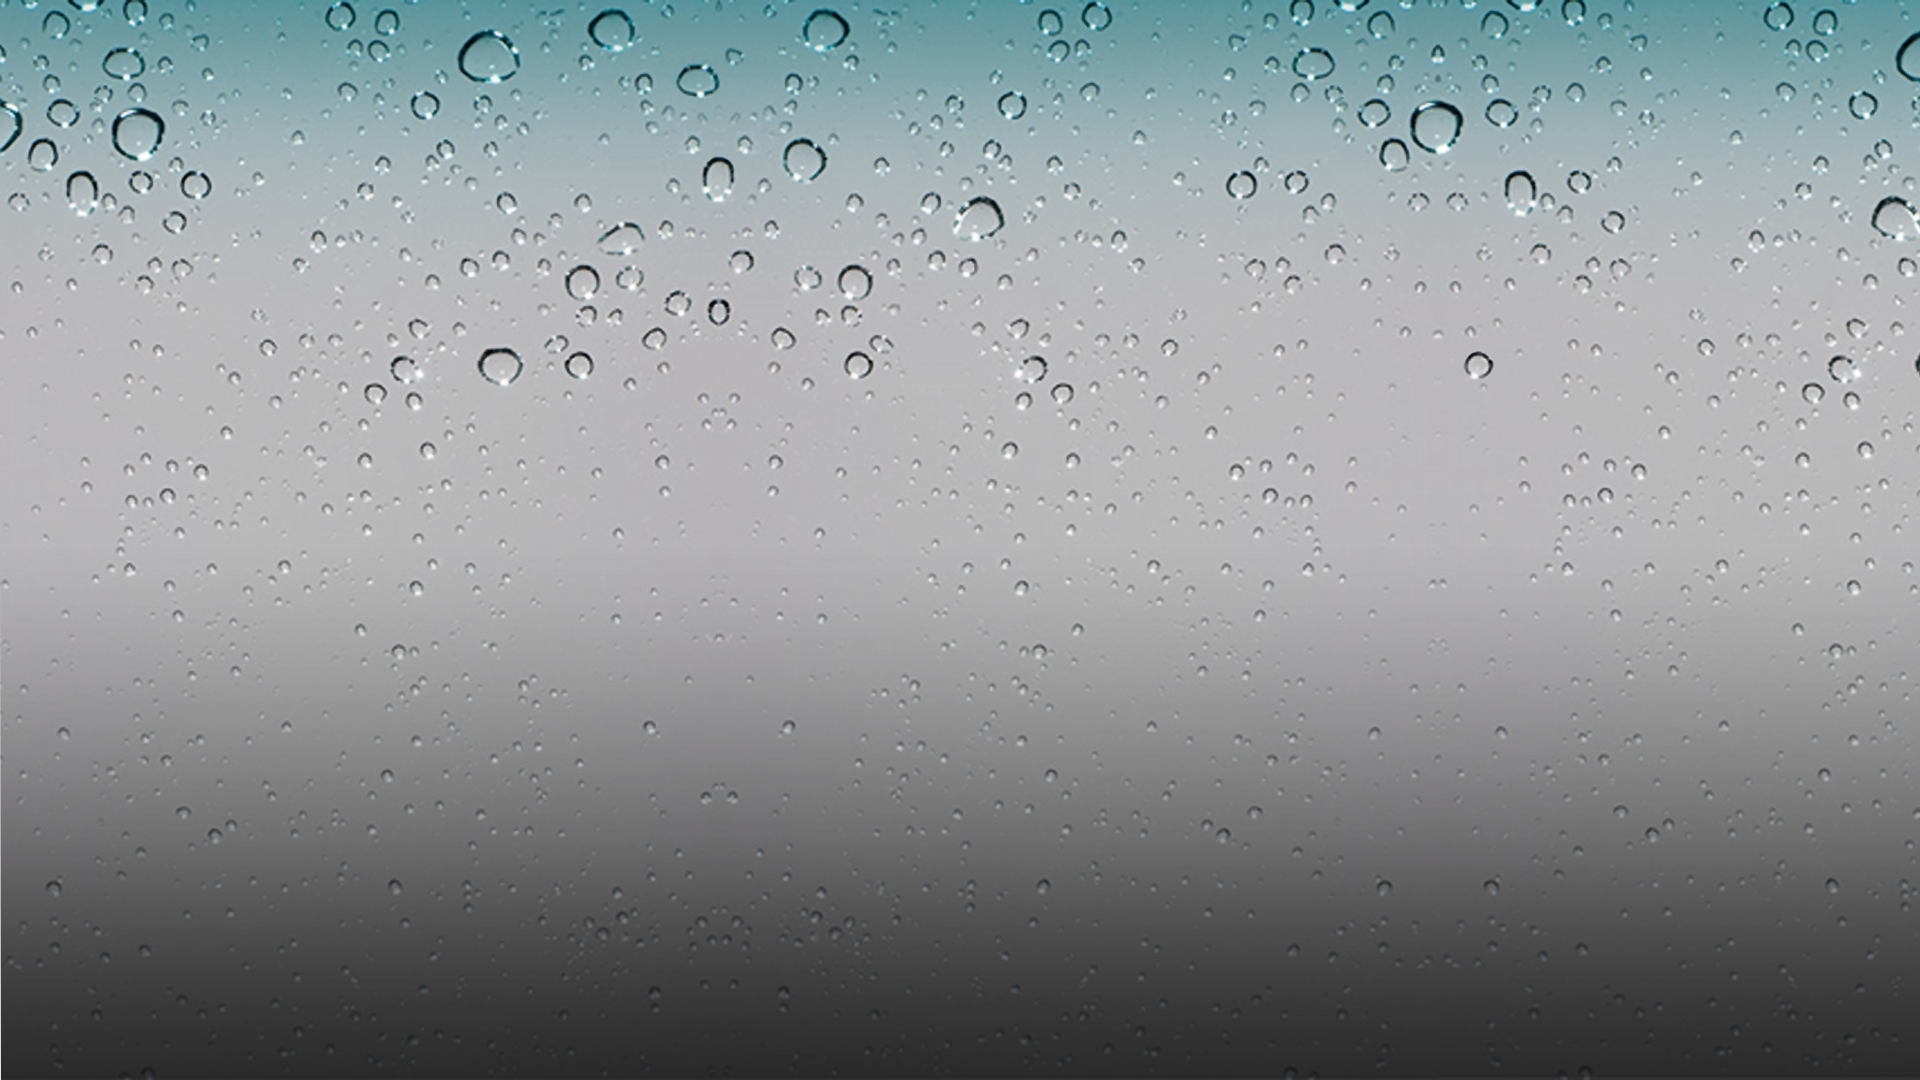 iPhone Raindrops Wallpaper 1920x1080